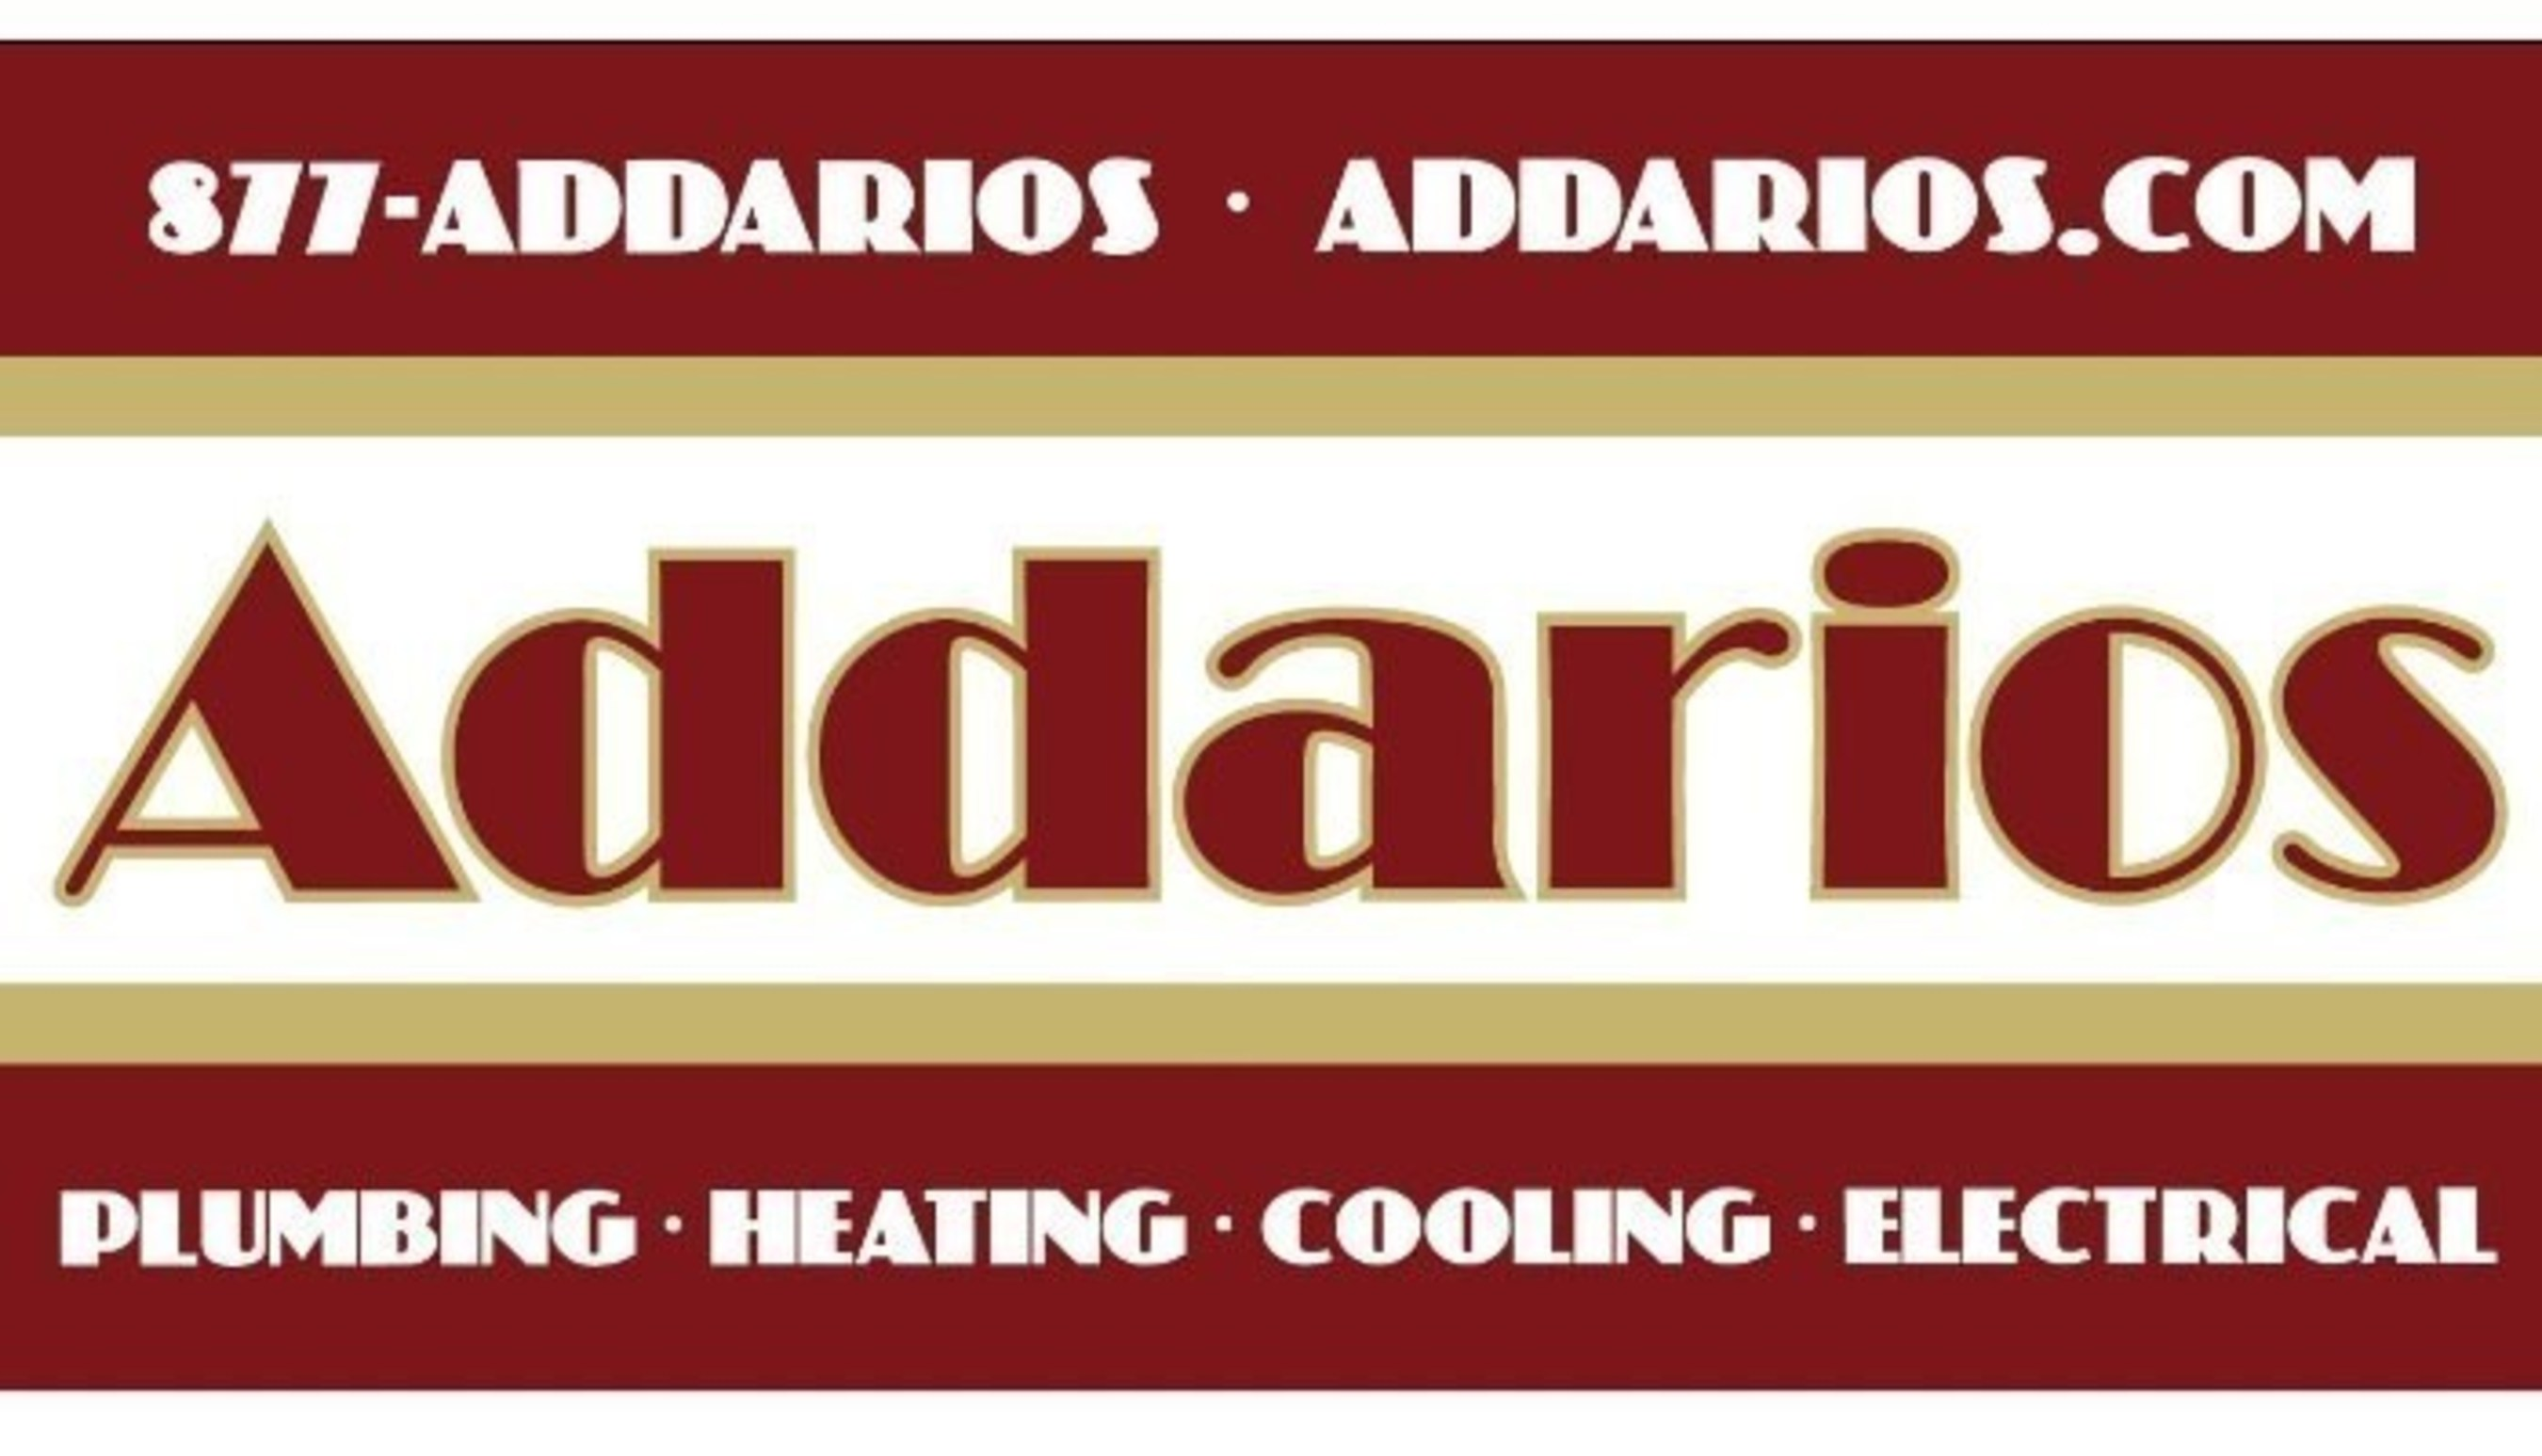 Flooded basement put homeowners at risk for mold and foundational damage, but the preventative tips from Addario's could save residents hundreds in repairs.